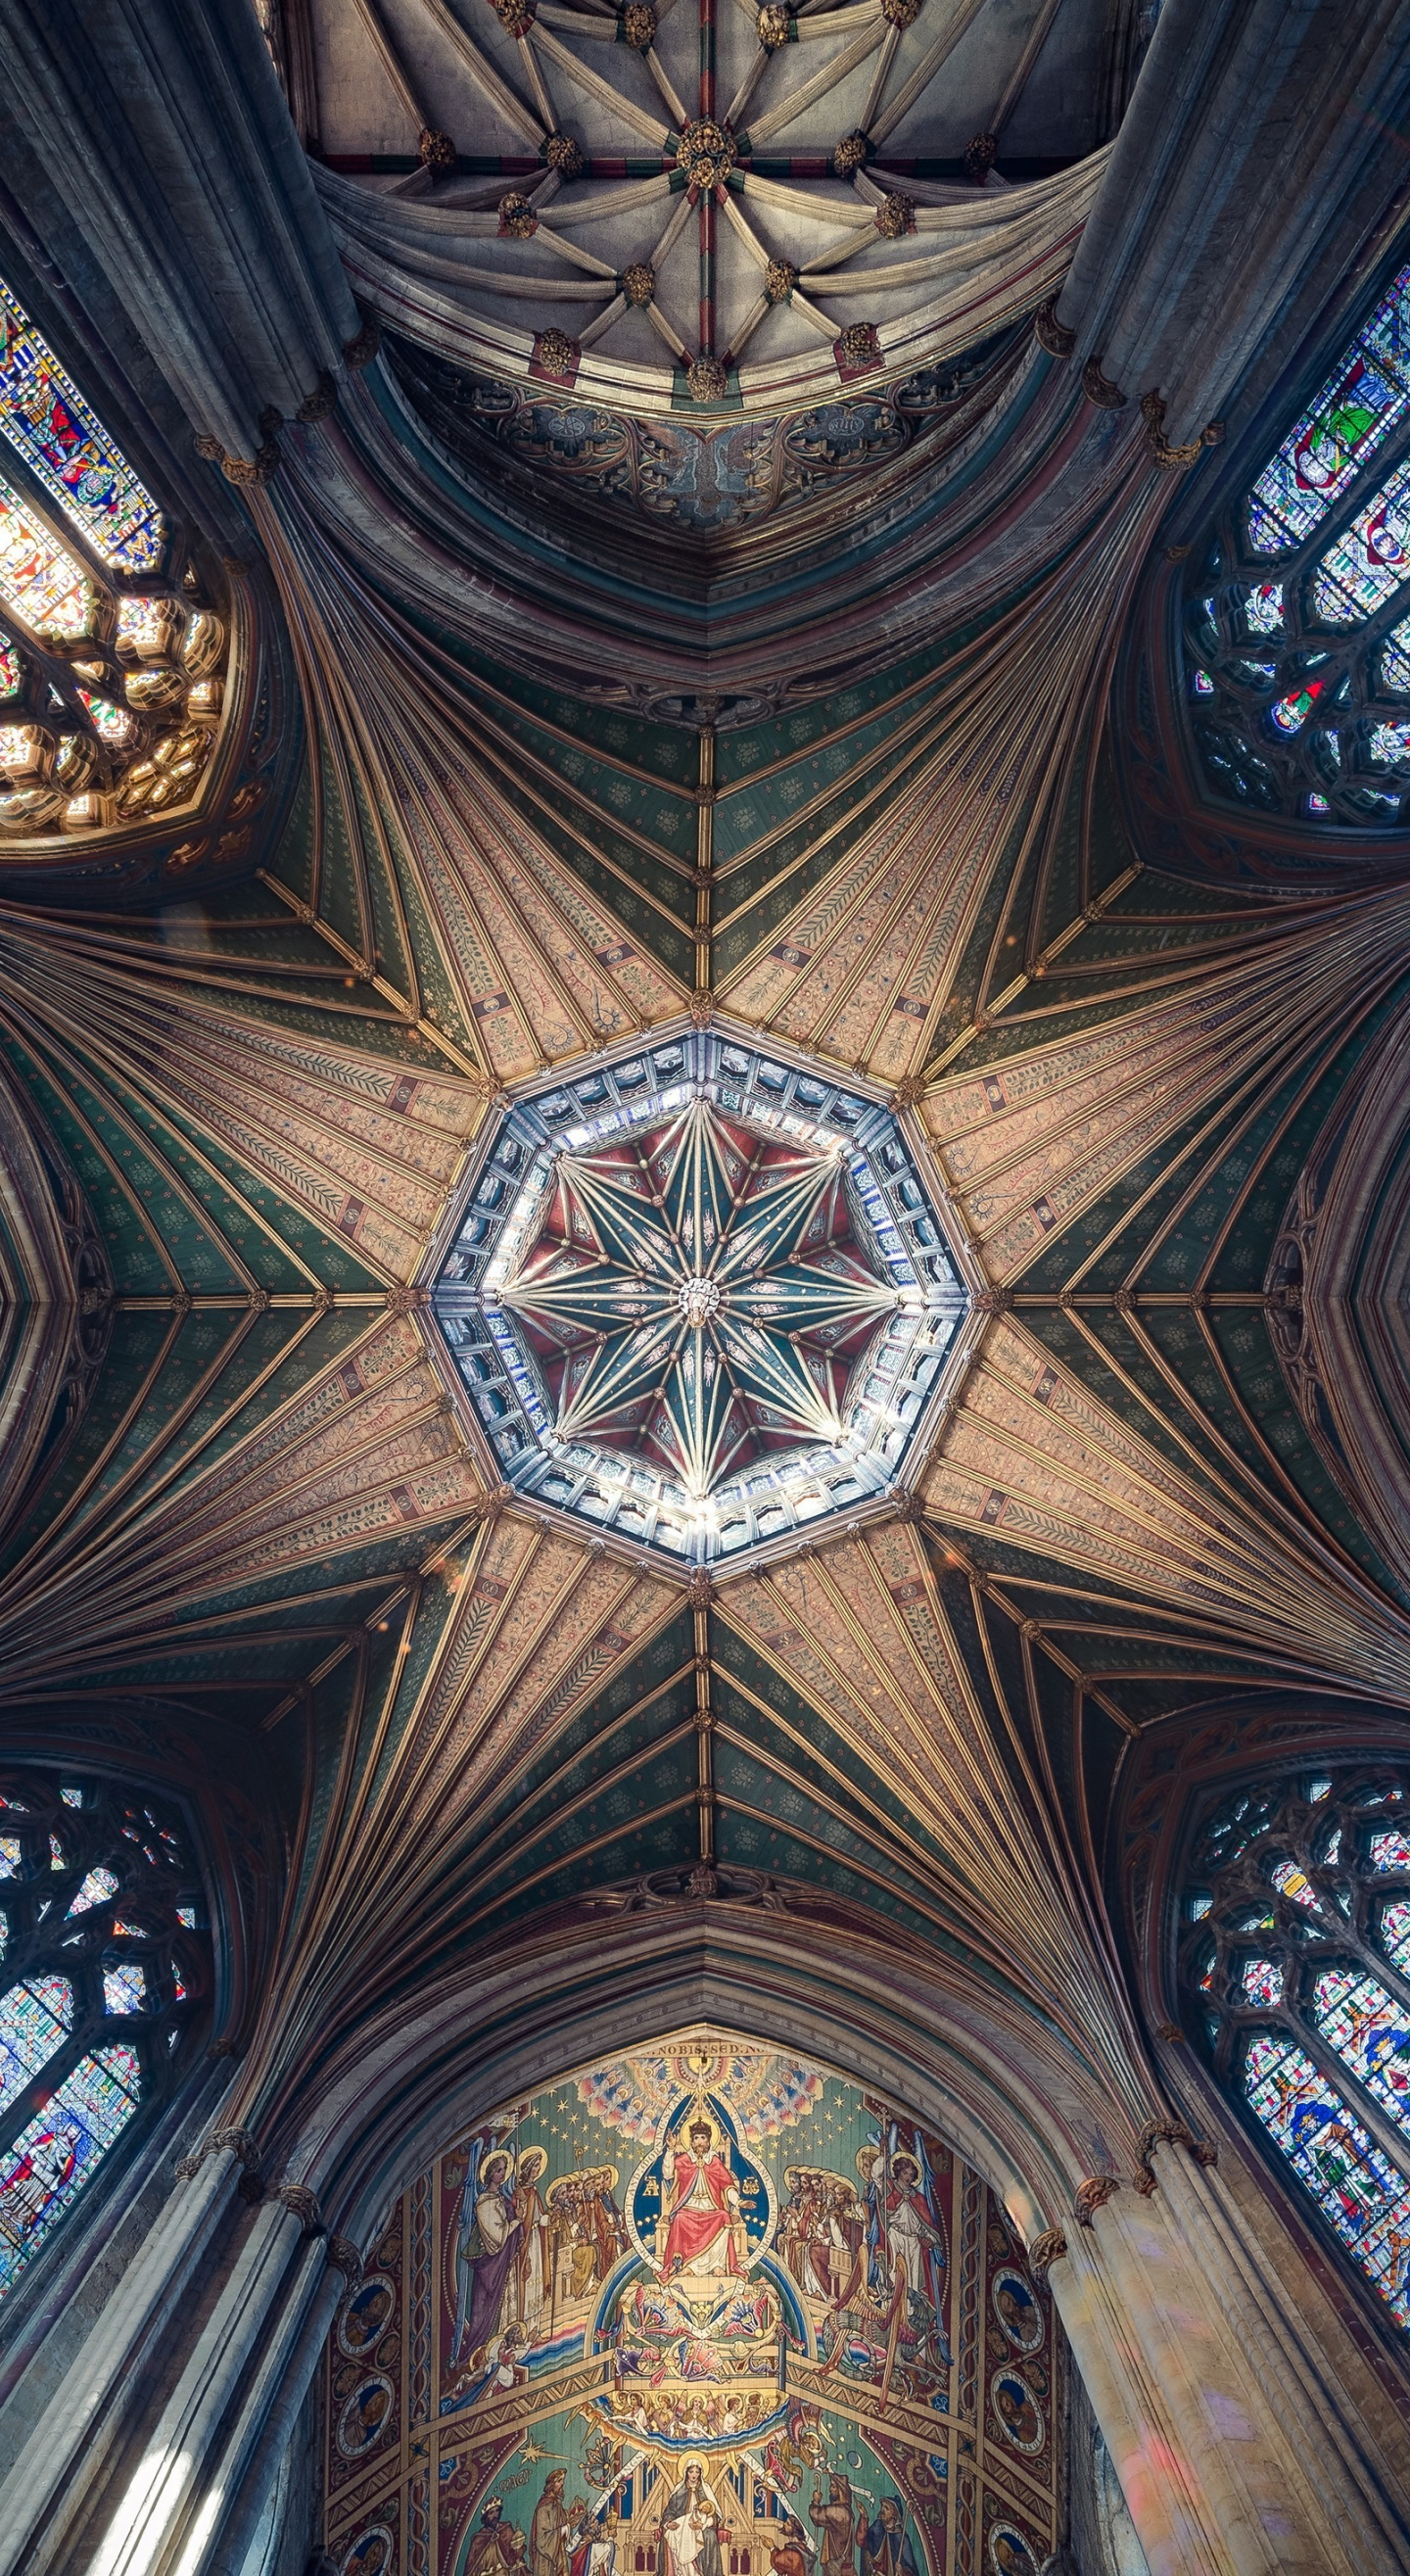 Ceiling, cathedral, symmetrical interior, architecture, 1440x2630 wallpaper